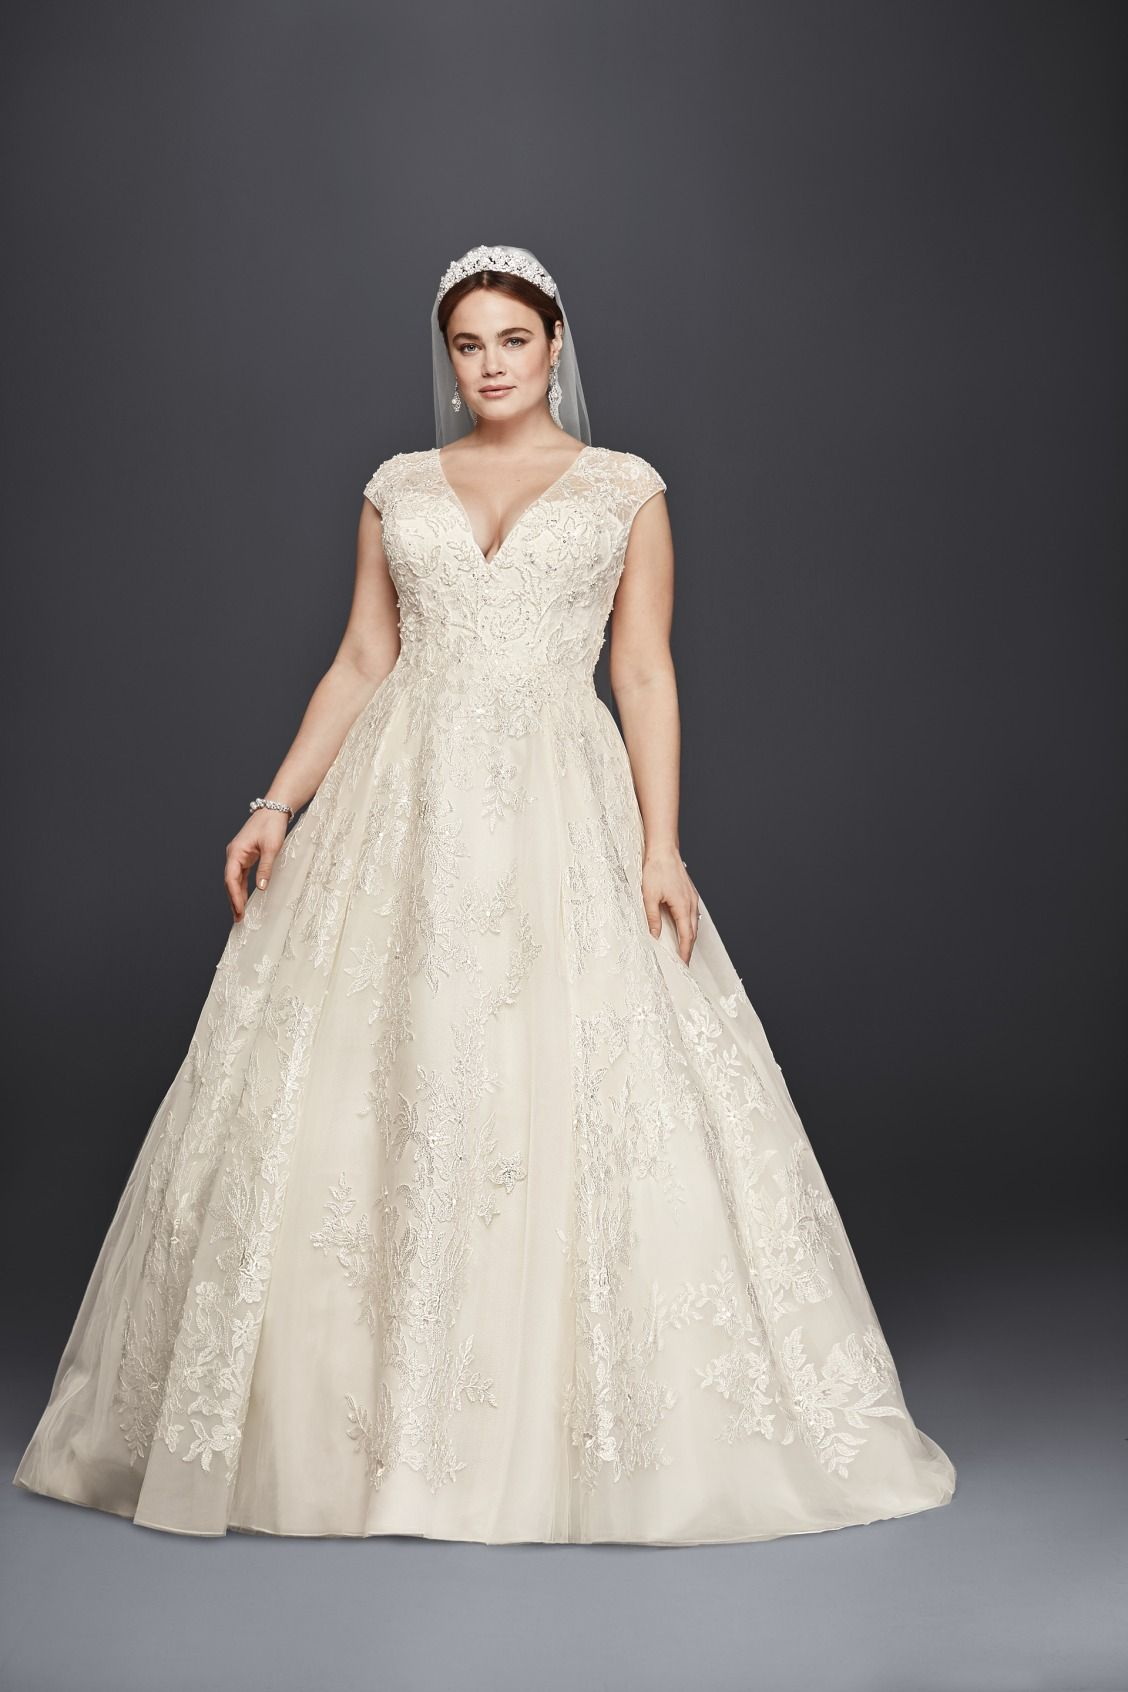 Plus Size V Neckline Cap Sleeve Ball Gown Wedding Dress By Oleg Cini Available At David S Bridal